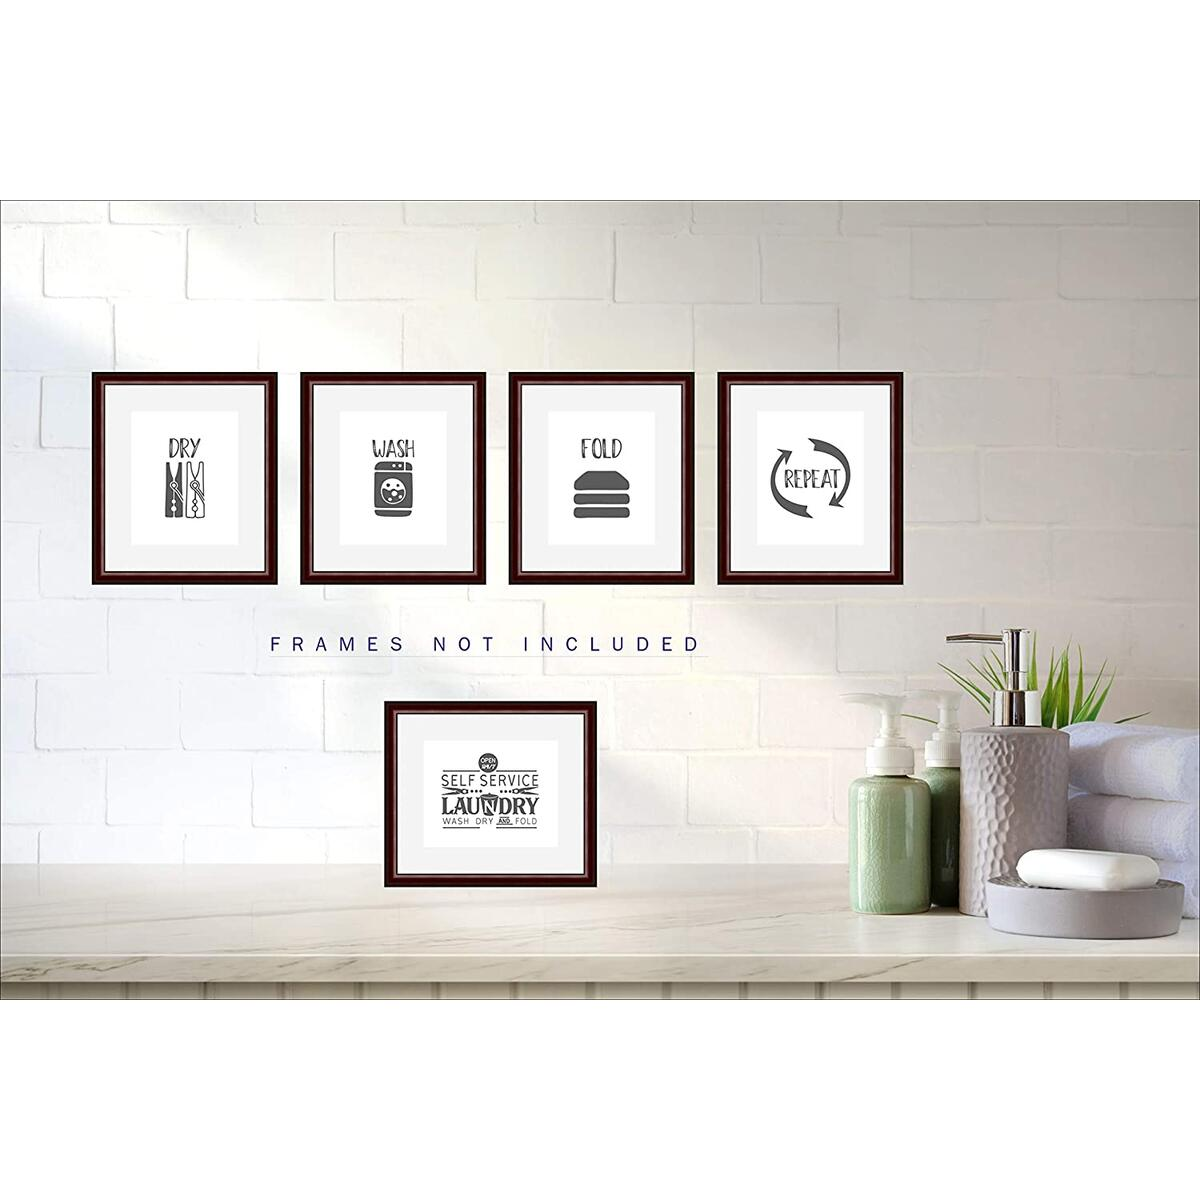 Laundry Room Wall Decor Prints by Linder - Set of 5 Rustic Farmhouse Laundry Room Sign and Wash Dry Fold Repeat Wall Prints - 8x10 inch Prints (Unframed)